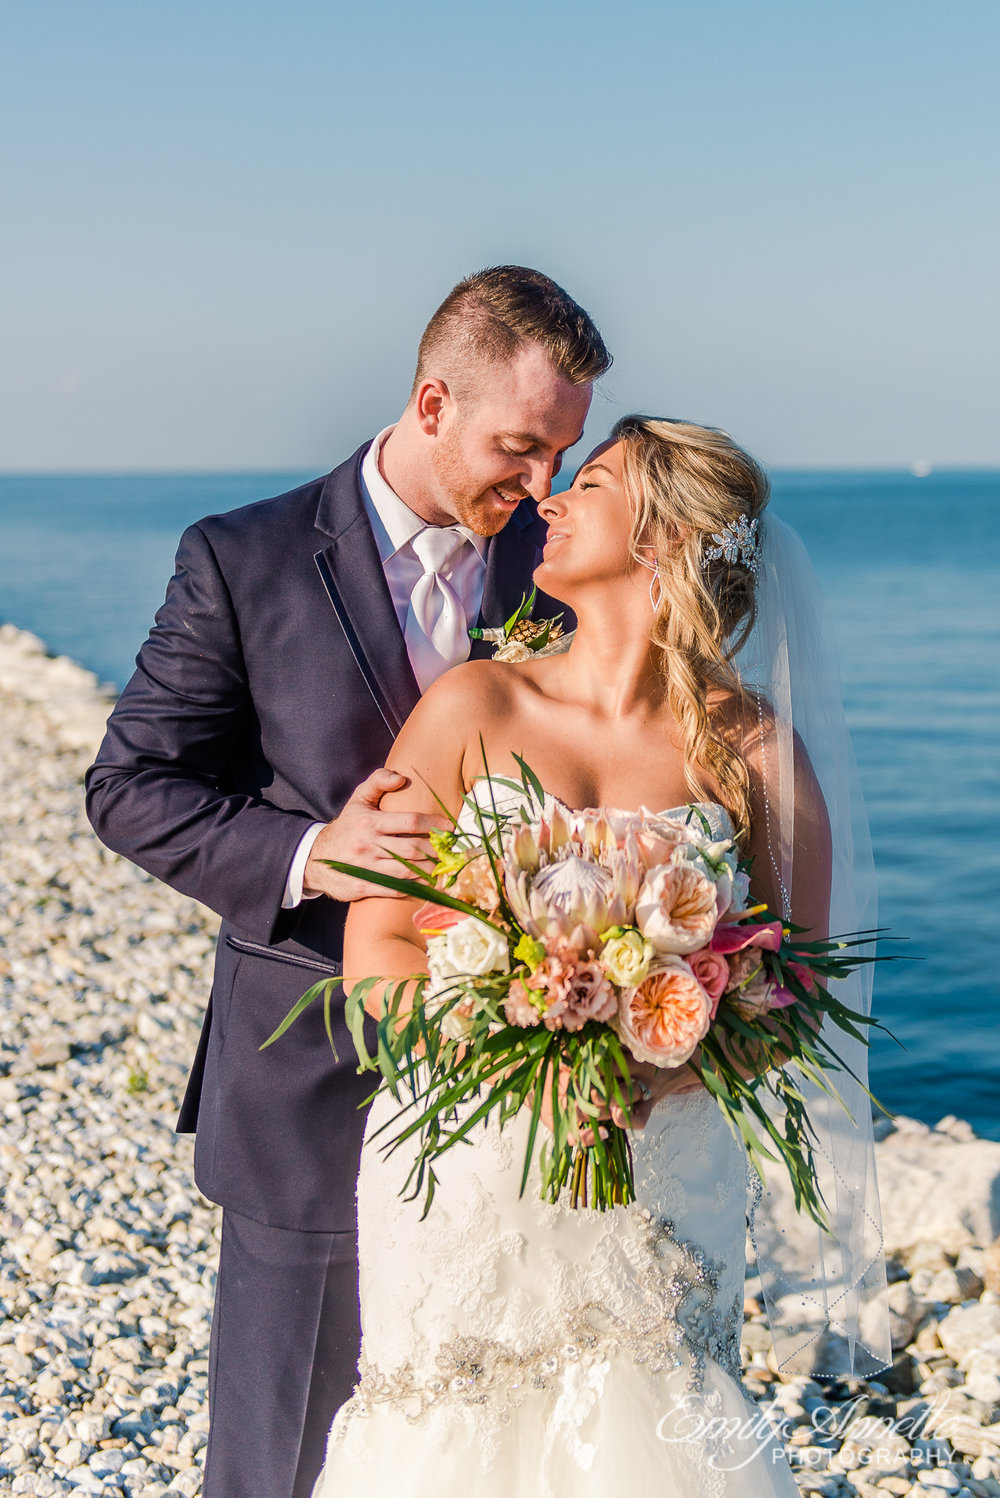 A bride and groom embrace while surrounded by water on their wedding day at Herrington on the Bay in North Beach, Maryland